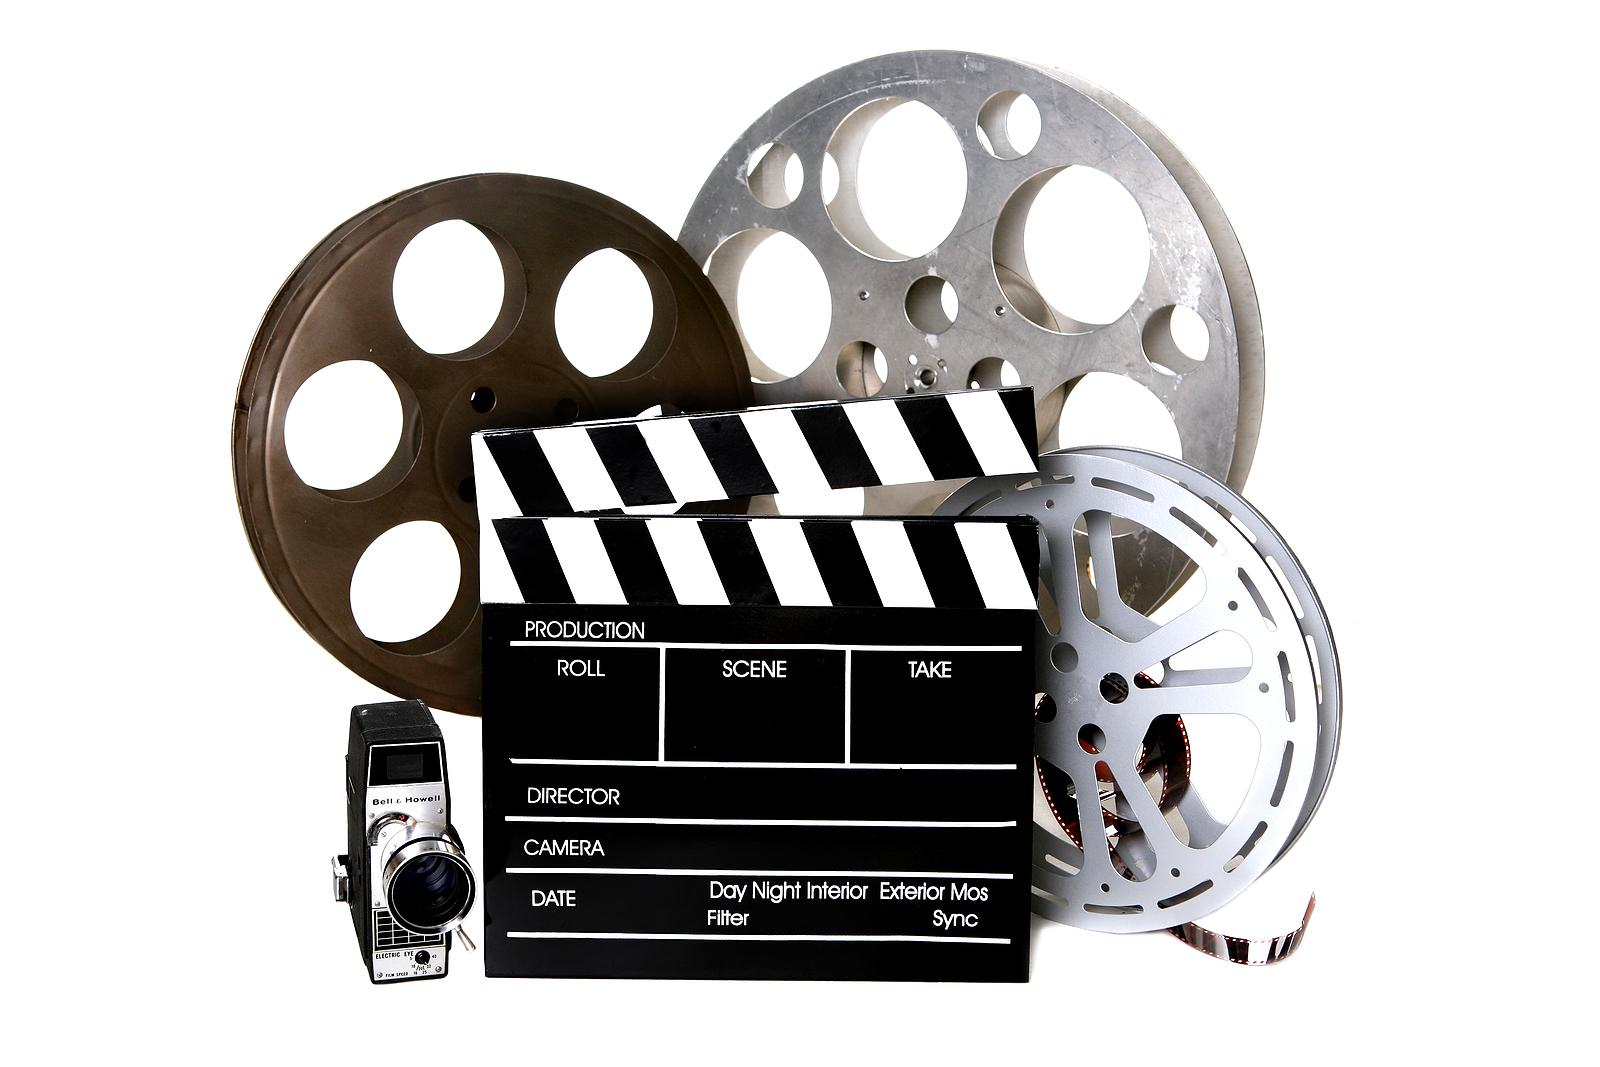 Film reels, camera, and clapperboard